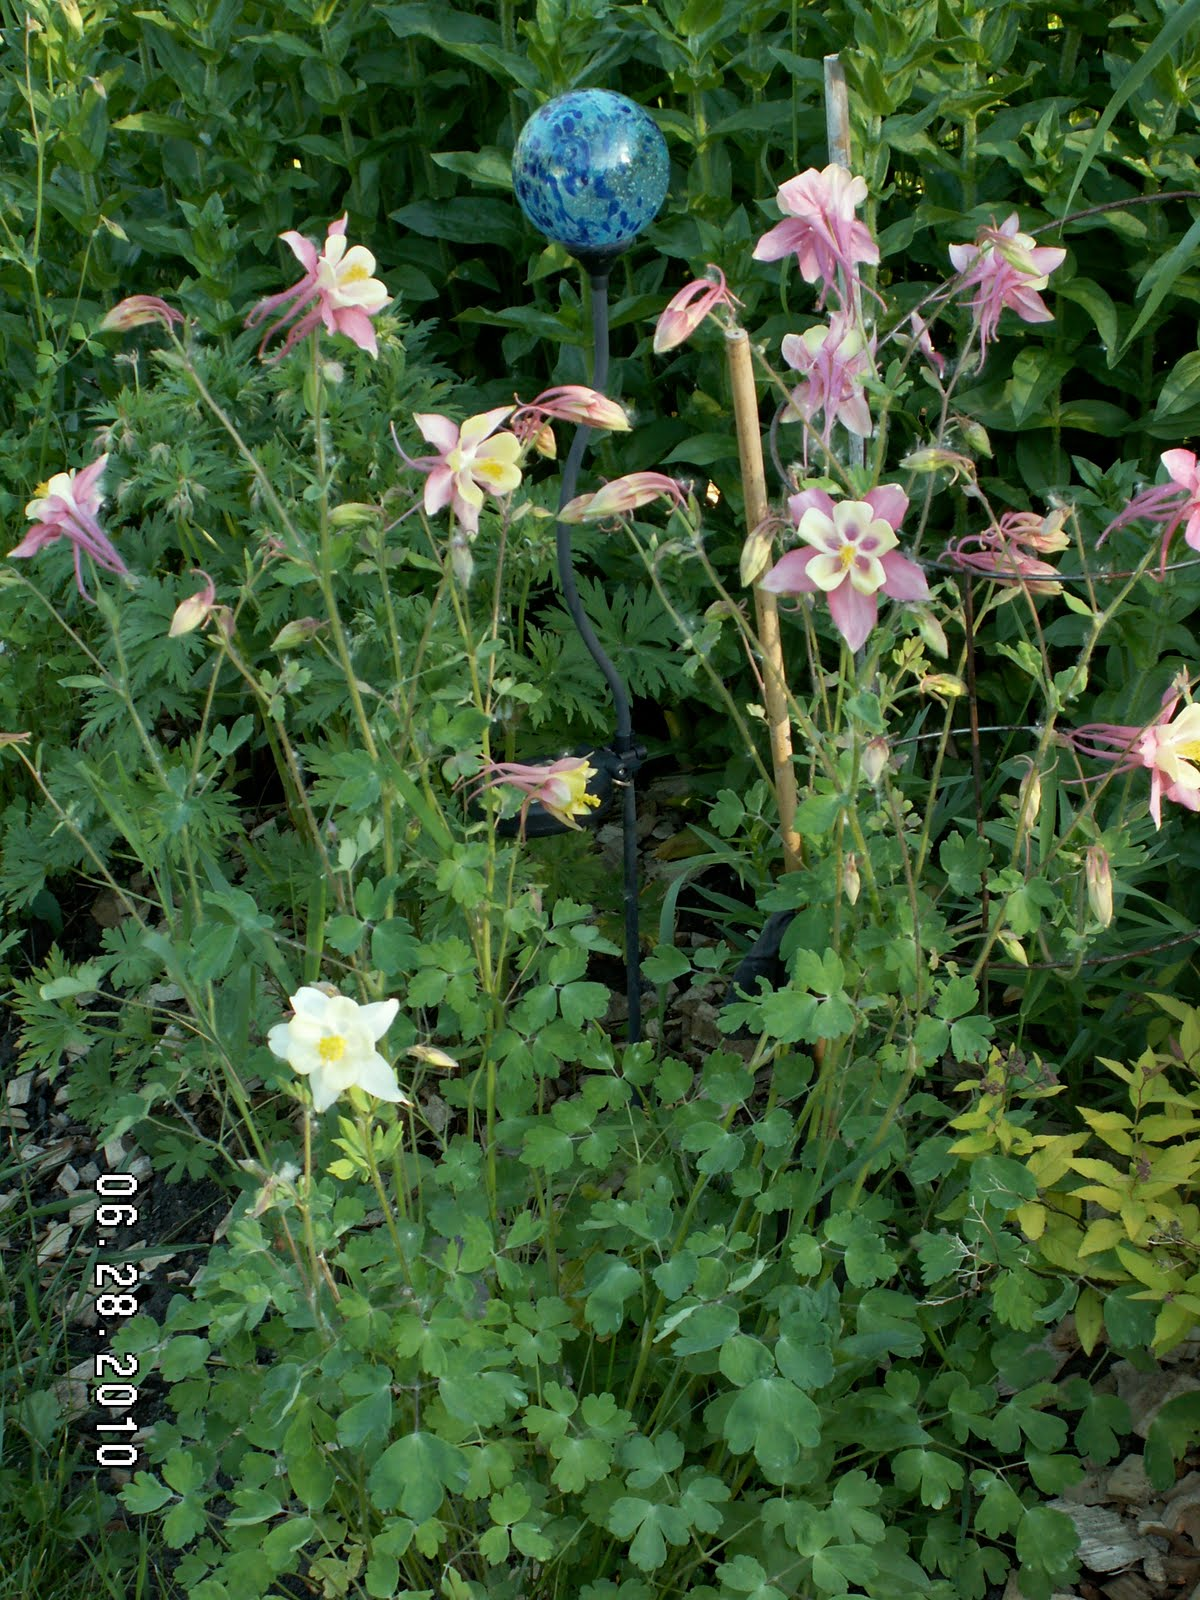 Carolas alberta garden 2018 lupines columbines and gaillardia lupines have interesting foliage and beautiful tall spikes on flowers in a variety of colors the leaves are compound leaves with 5 to 7 long fingers on izmirmasajfo